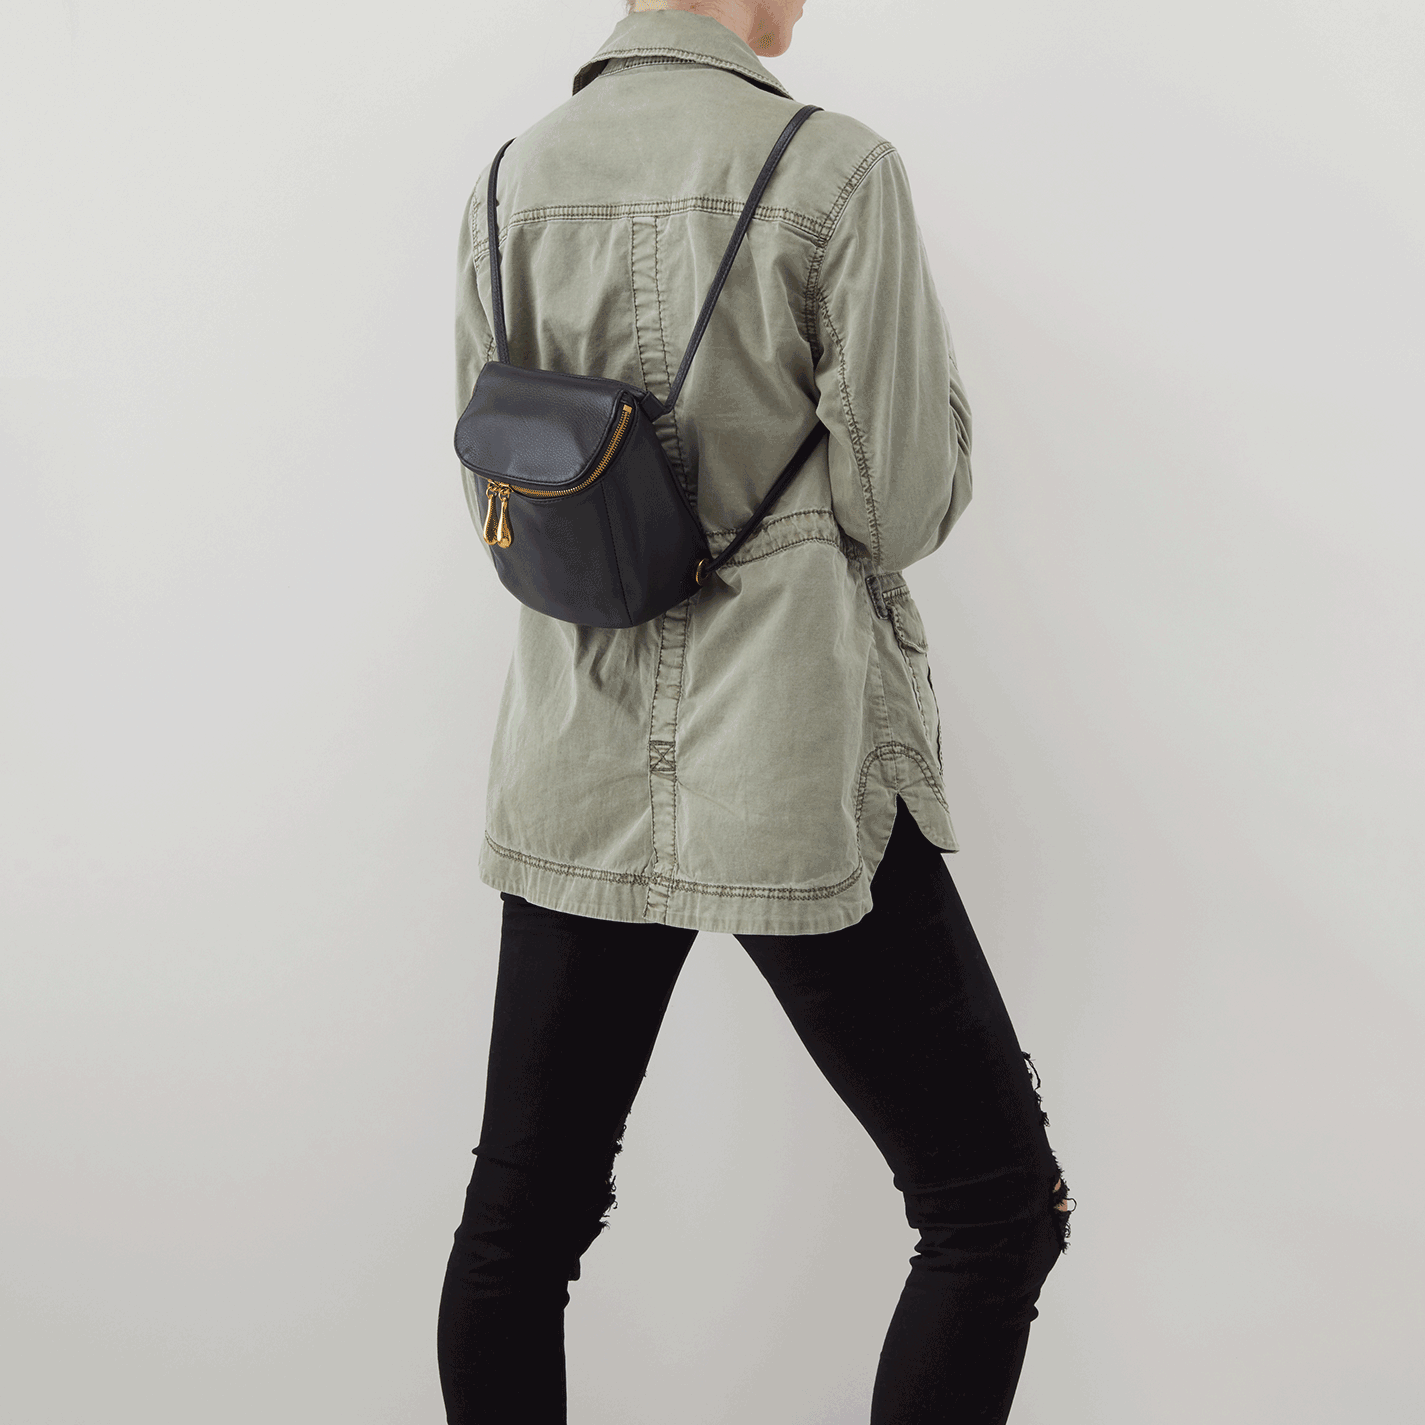 Hobo STREAM Convertible Crossbody Backpack